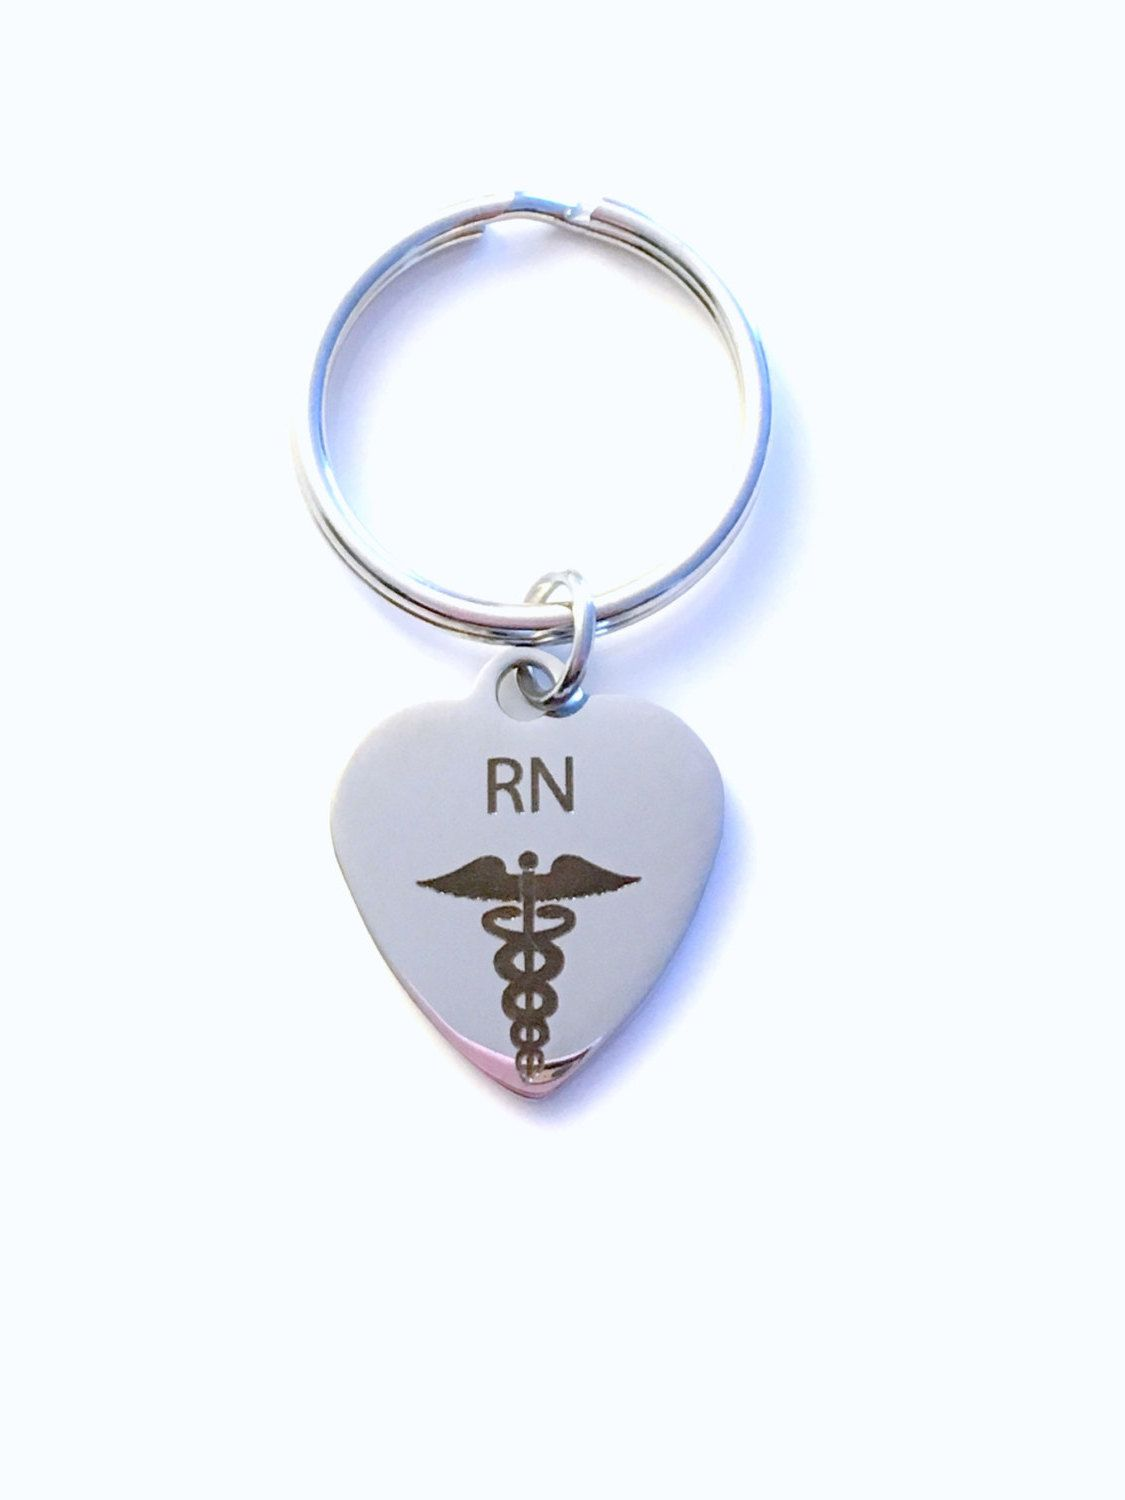 Gift for registered nurse rn keyring rn keychain key chain man gift for registered nurse rn keyring rn keychain key chain man men male plain simple stainless steel laser engraved iron steel key ring biocorpaavc Gallery